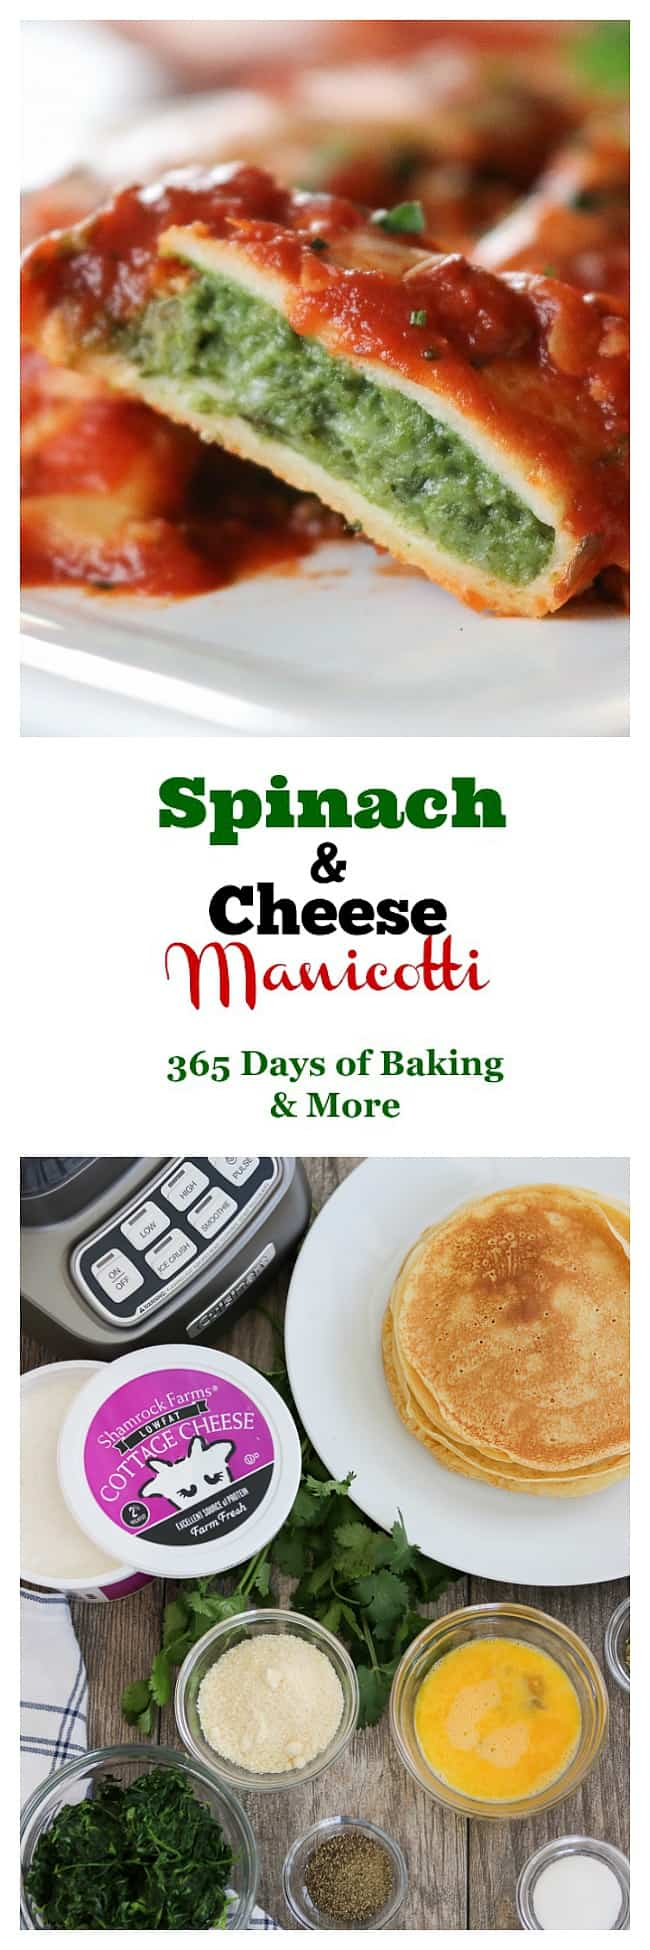 This easy Spinach and Cheese Manicotti is an old family favorite. It starts with a smooth, creamy filling made of cottage cheese, spinach, and eggs, and is rolled into a homemade crepe. Serve them with a salad and you have a delicious dinner that your family will enjoy for years to come.